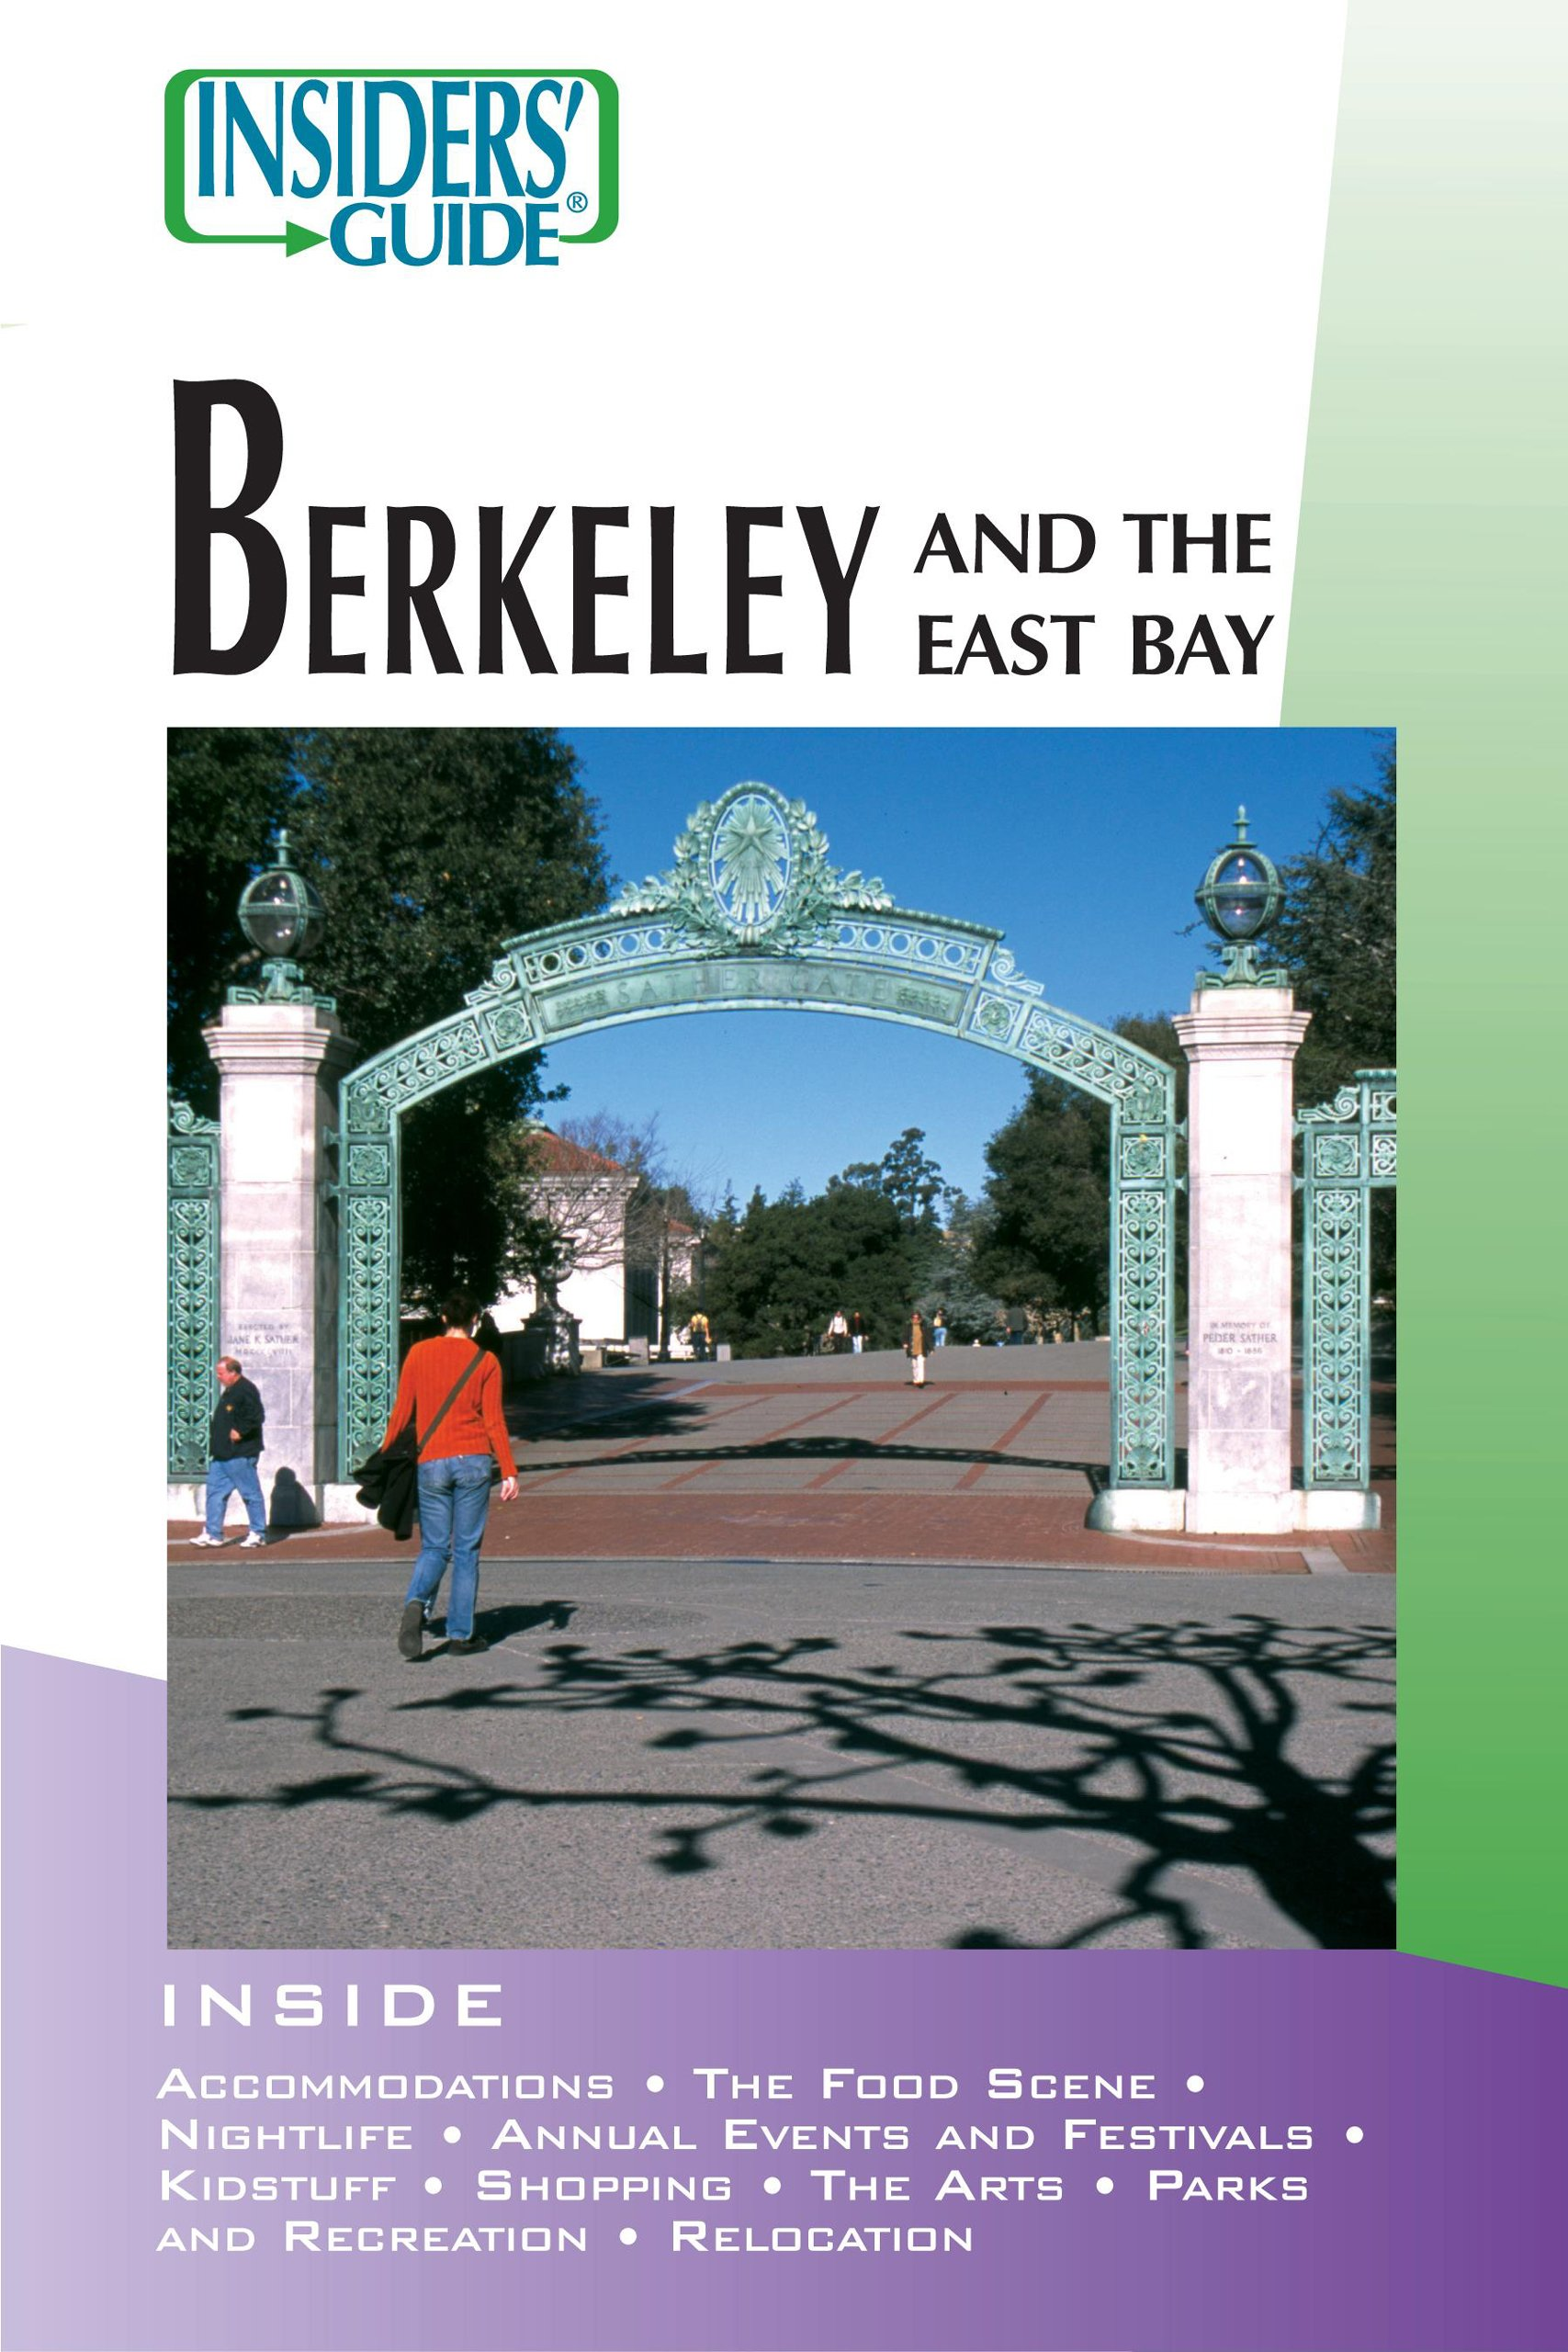 Download Insiders' Guide to Berkeley and the East Bay (Insiders' Guide Series) PDF